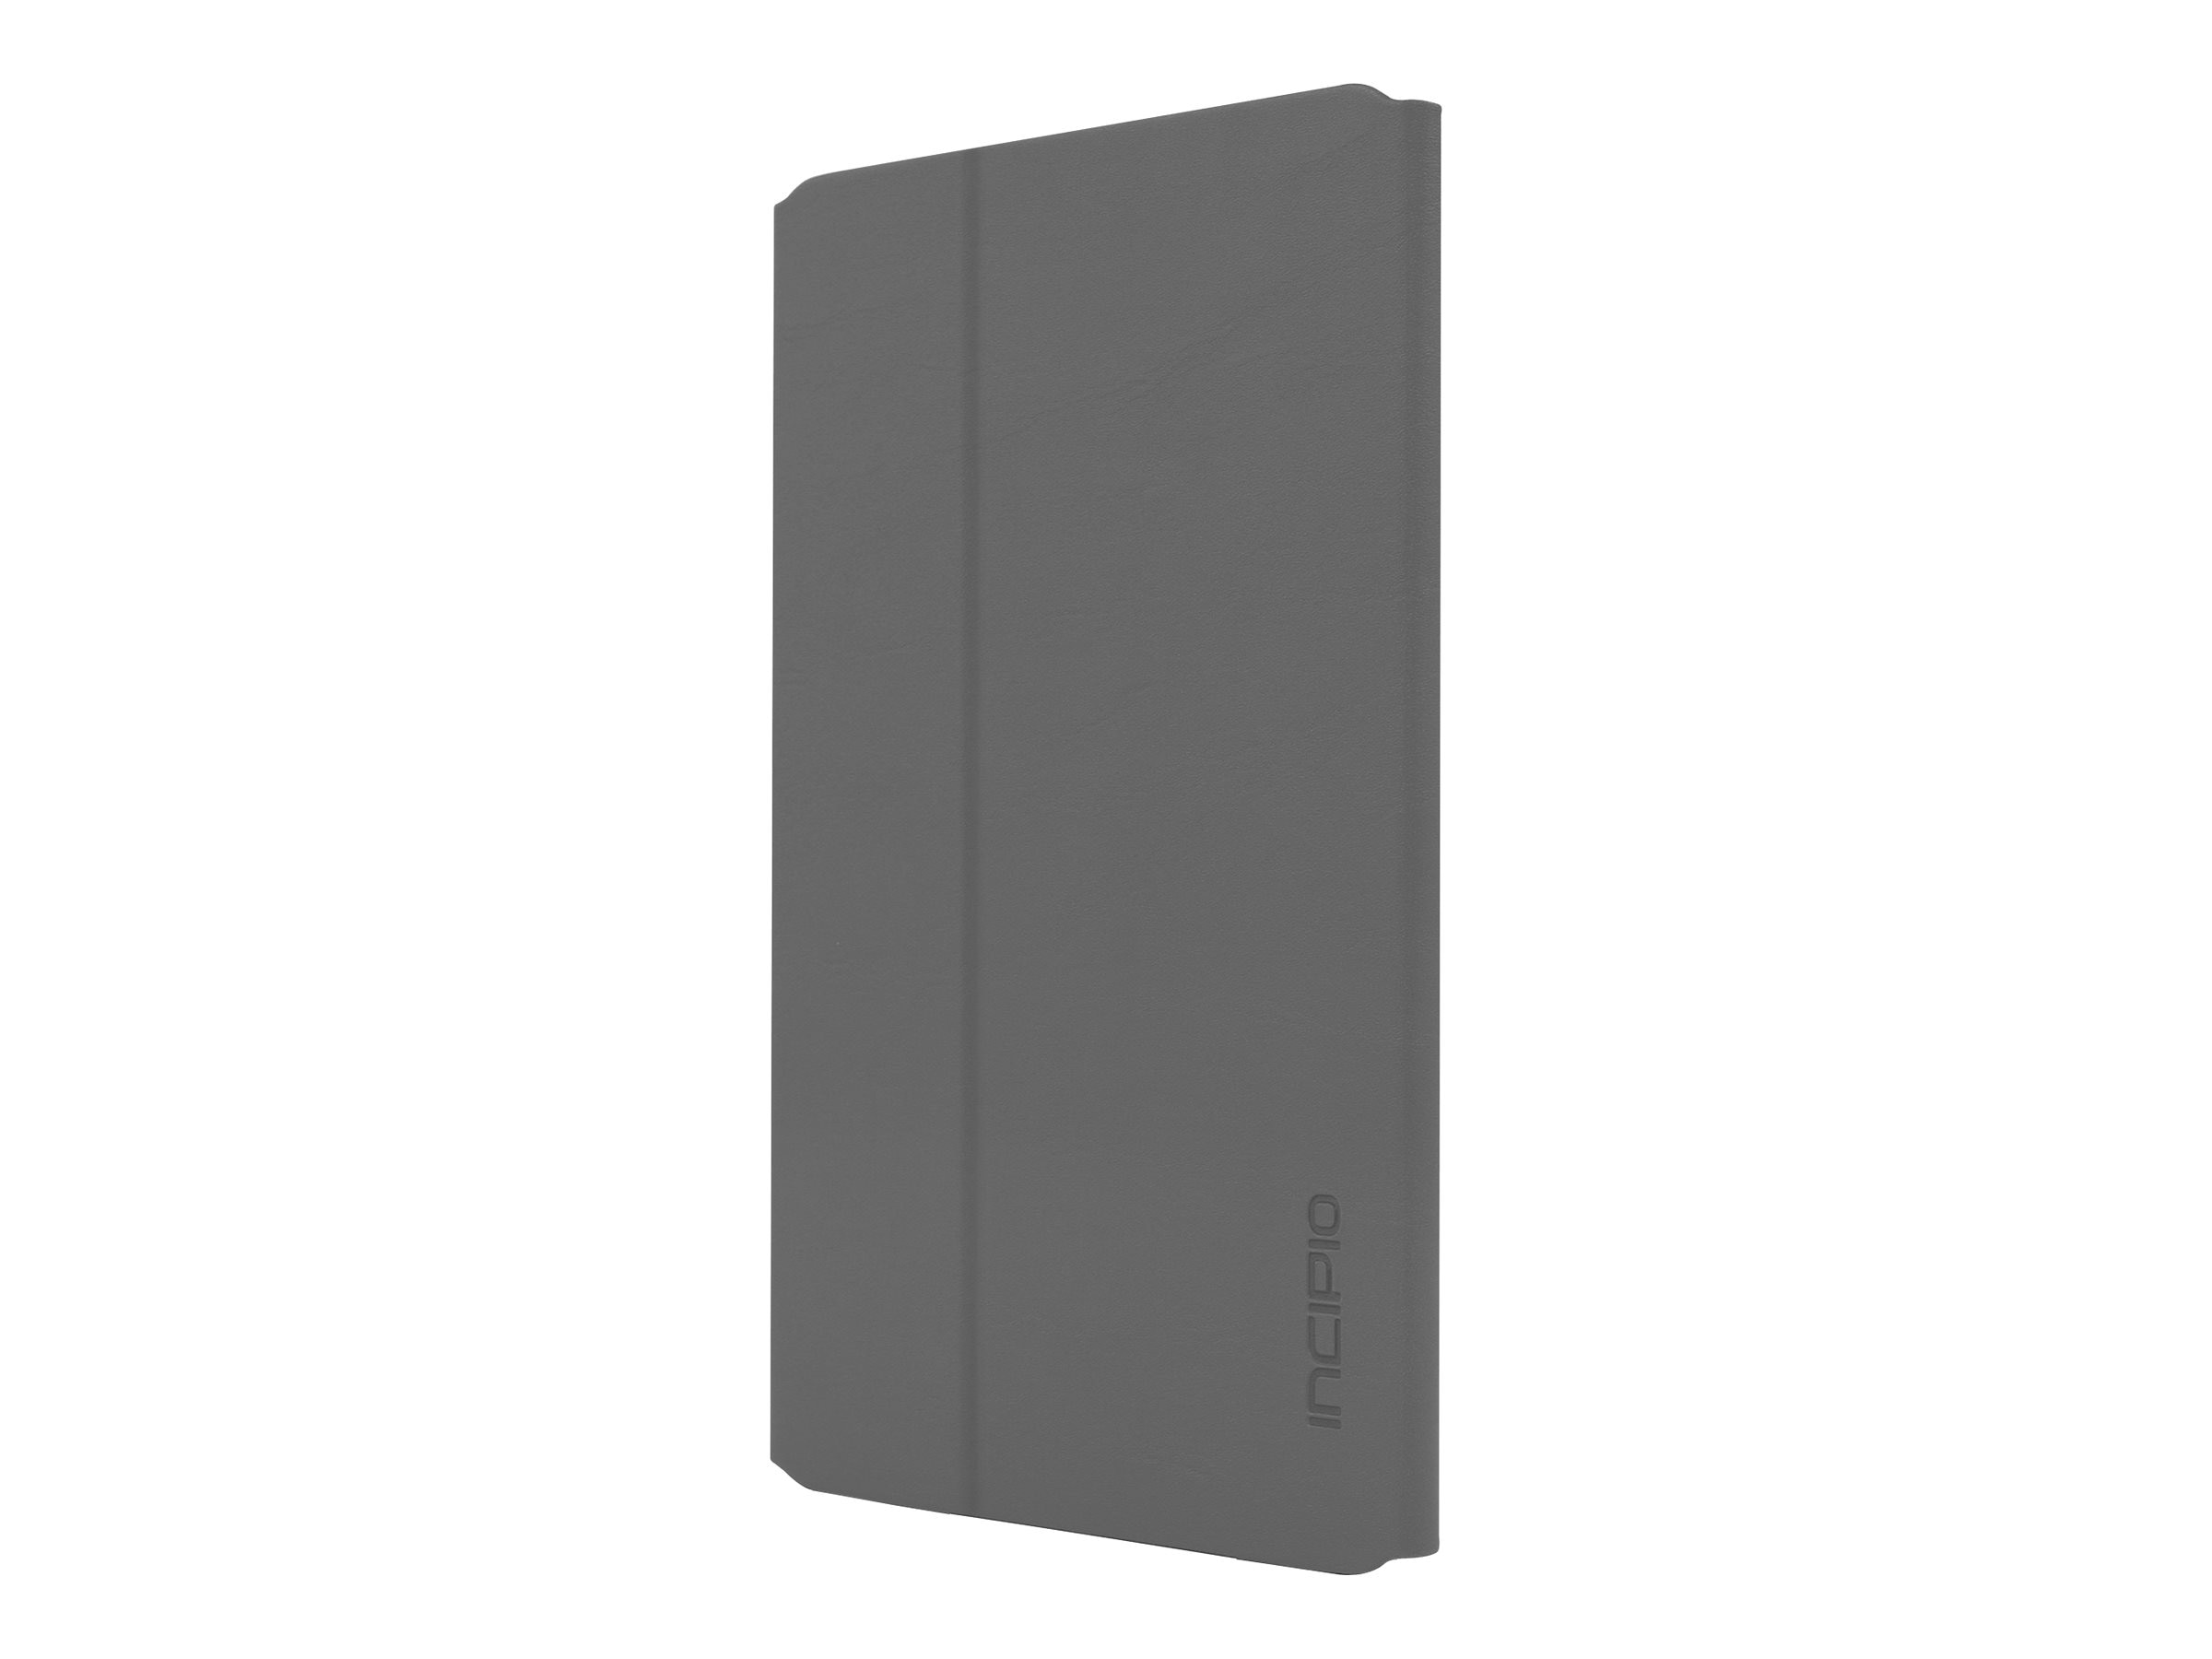 Incipio Faraday Folio Case w  Magnetic Fold-over Closure for iPad mini 4, Gray